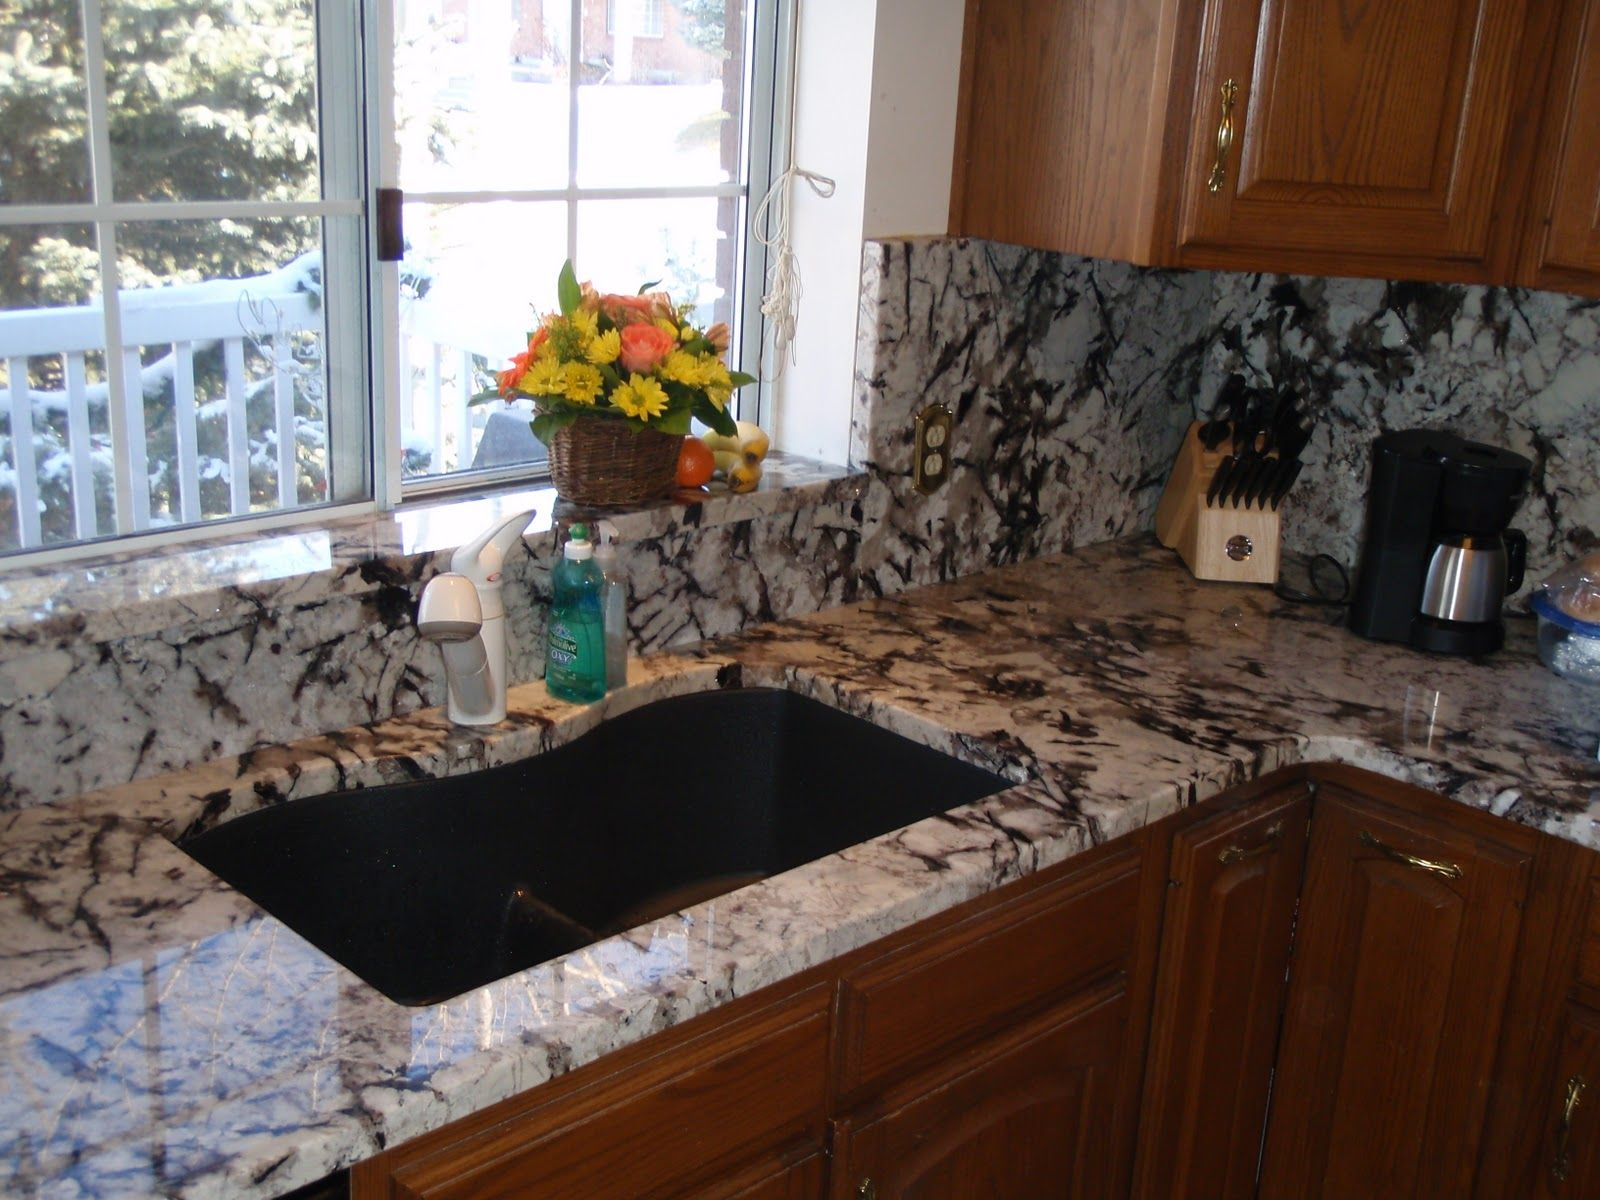 Affordable Custom Cabinets and Granite Countertops ... on Granite Countertops And Backsplash  id=40281